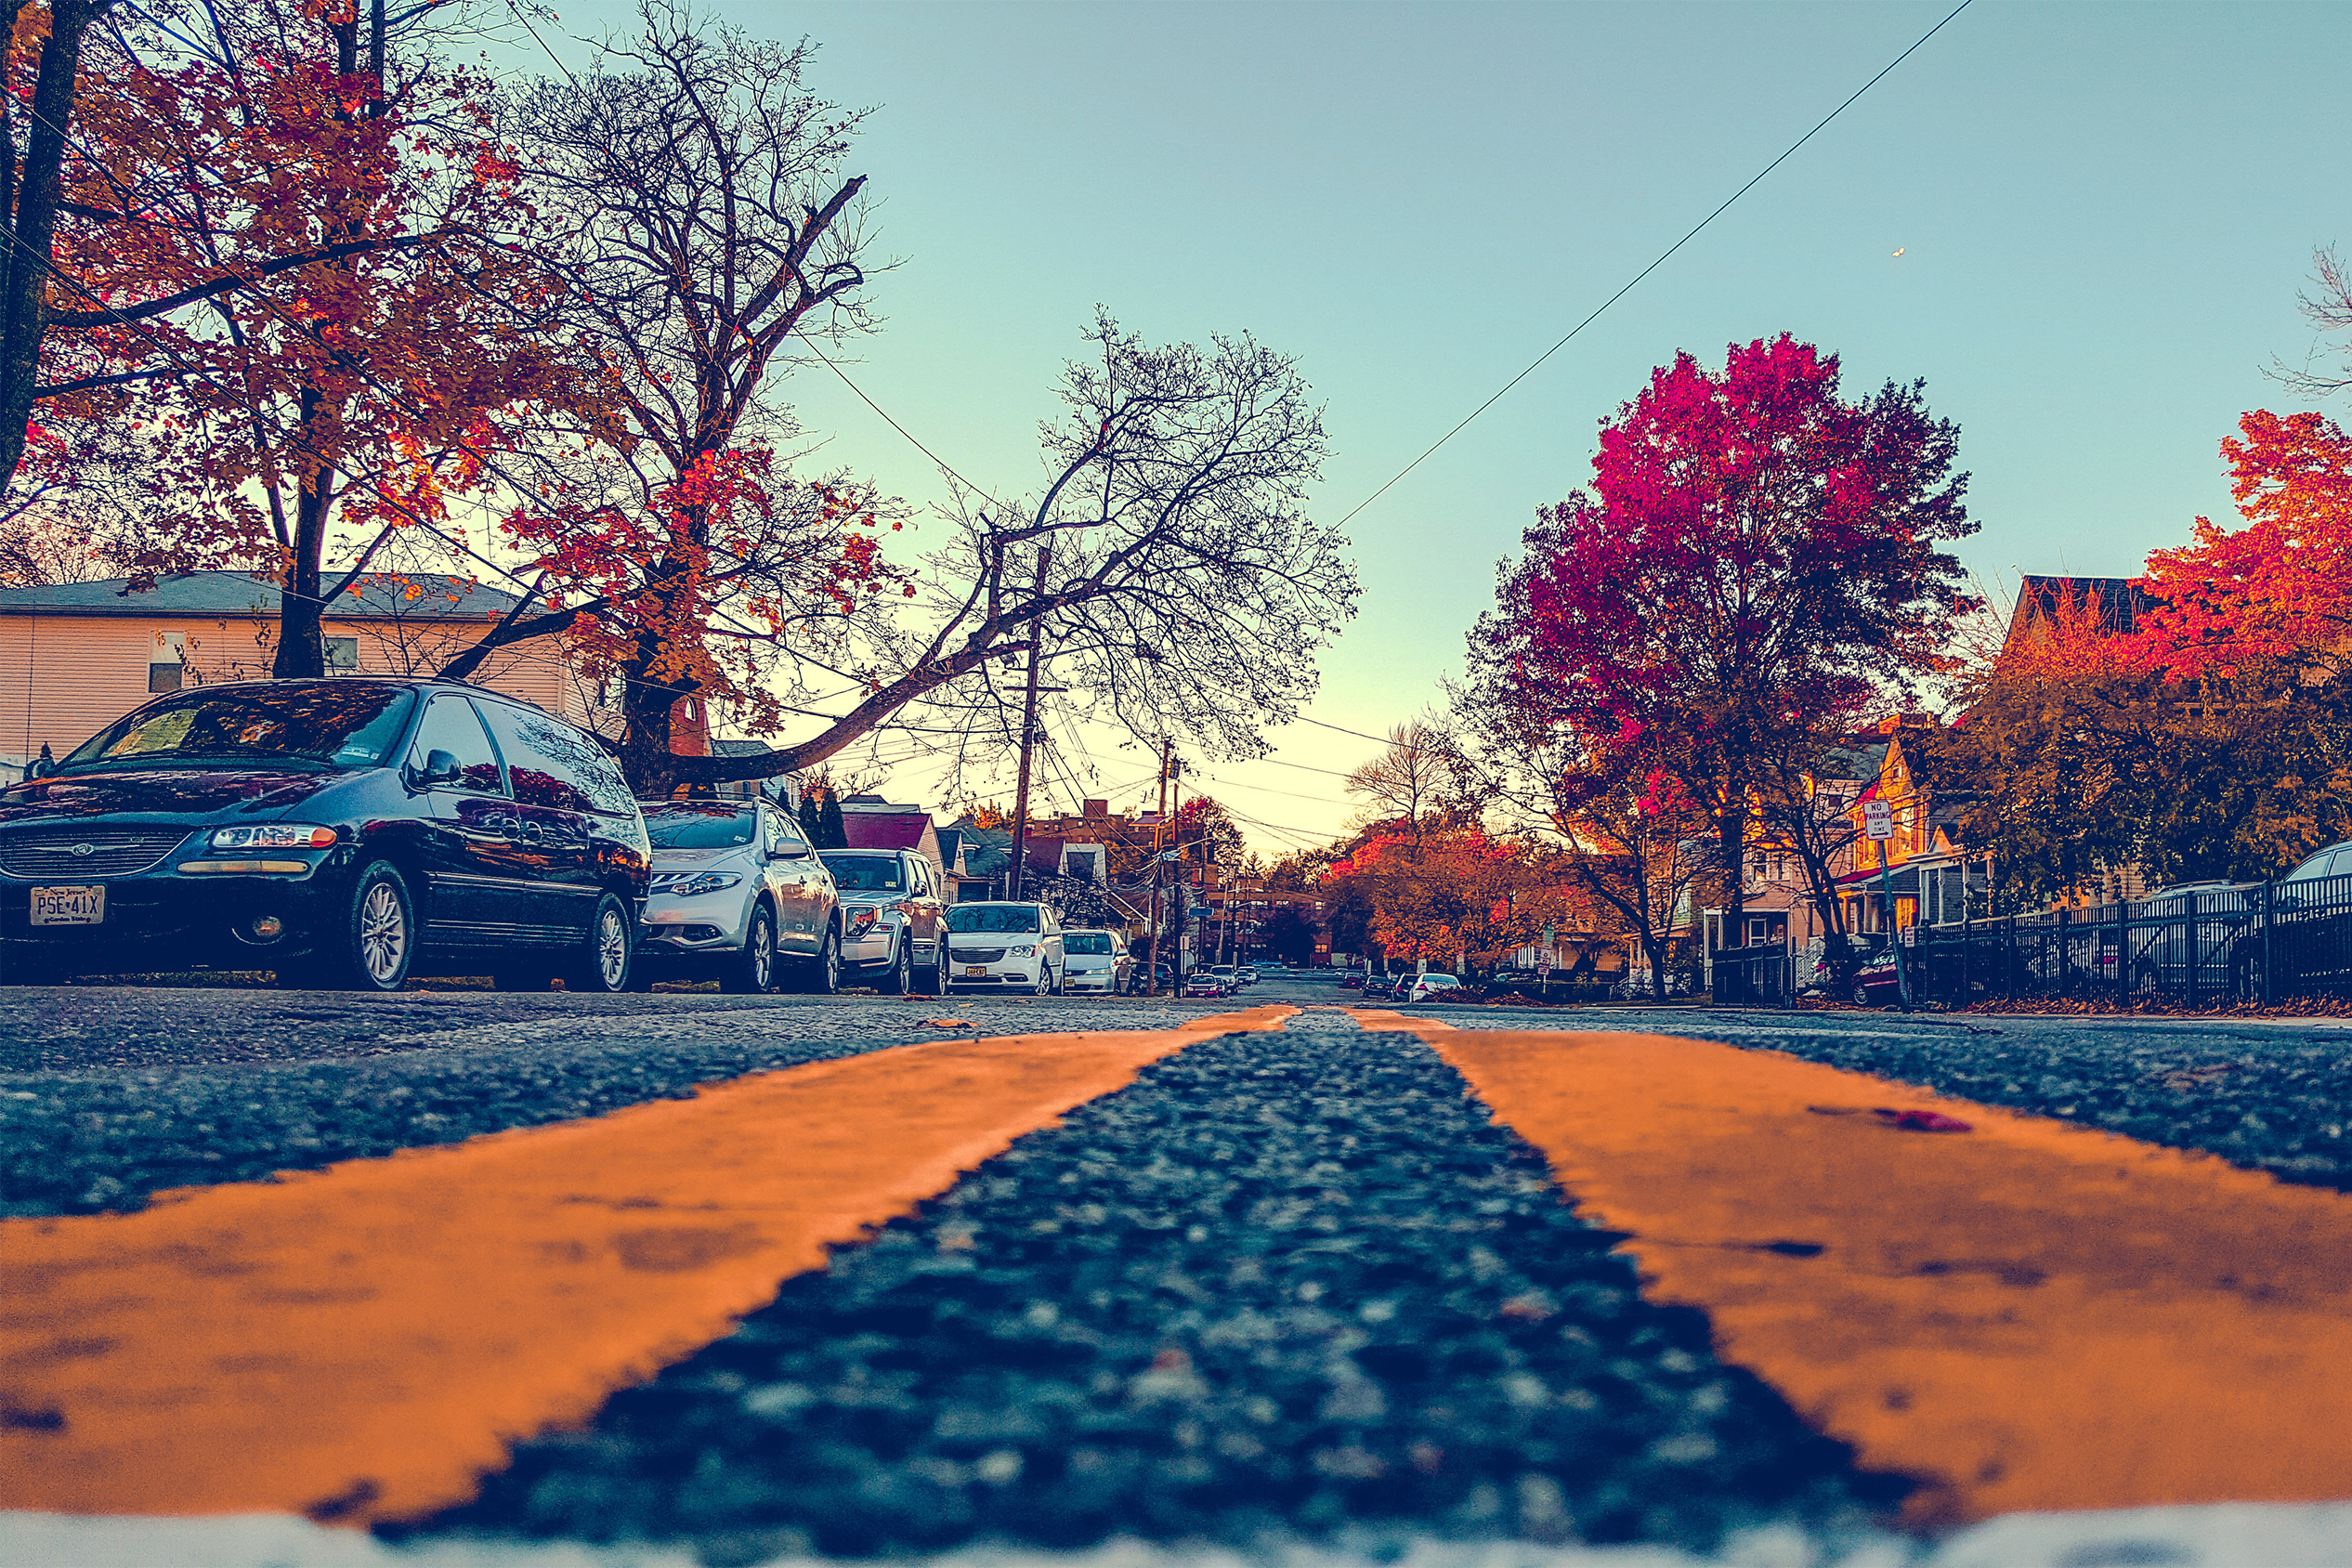 Street parked cars in the fall